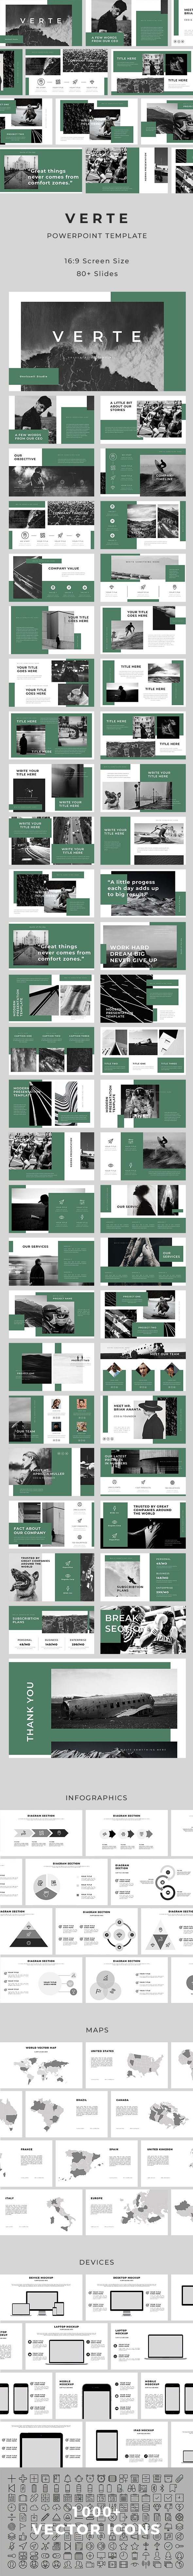 Verte PowerPoint Template - Creative PowerPoint Templates